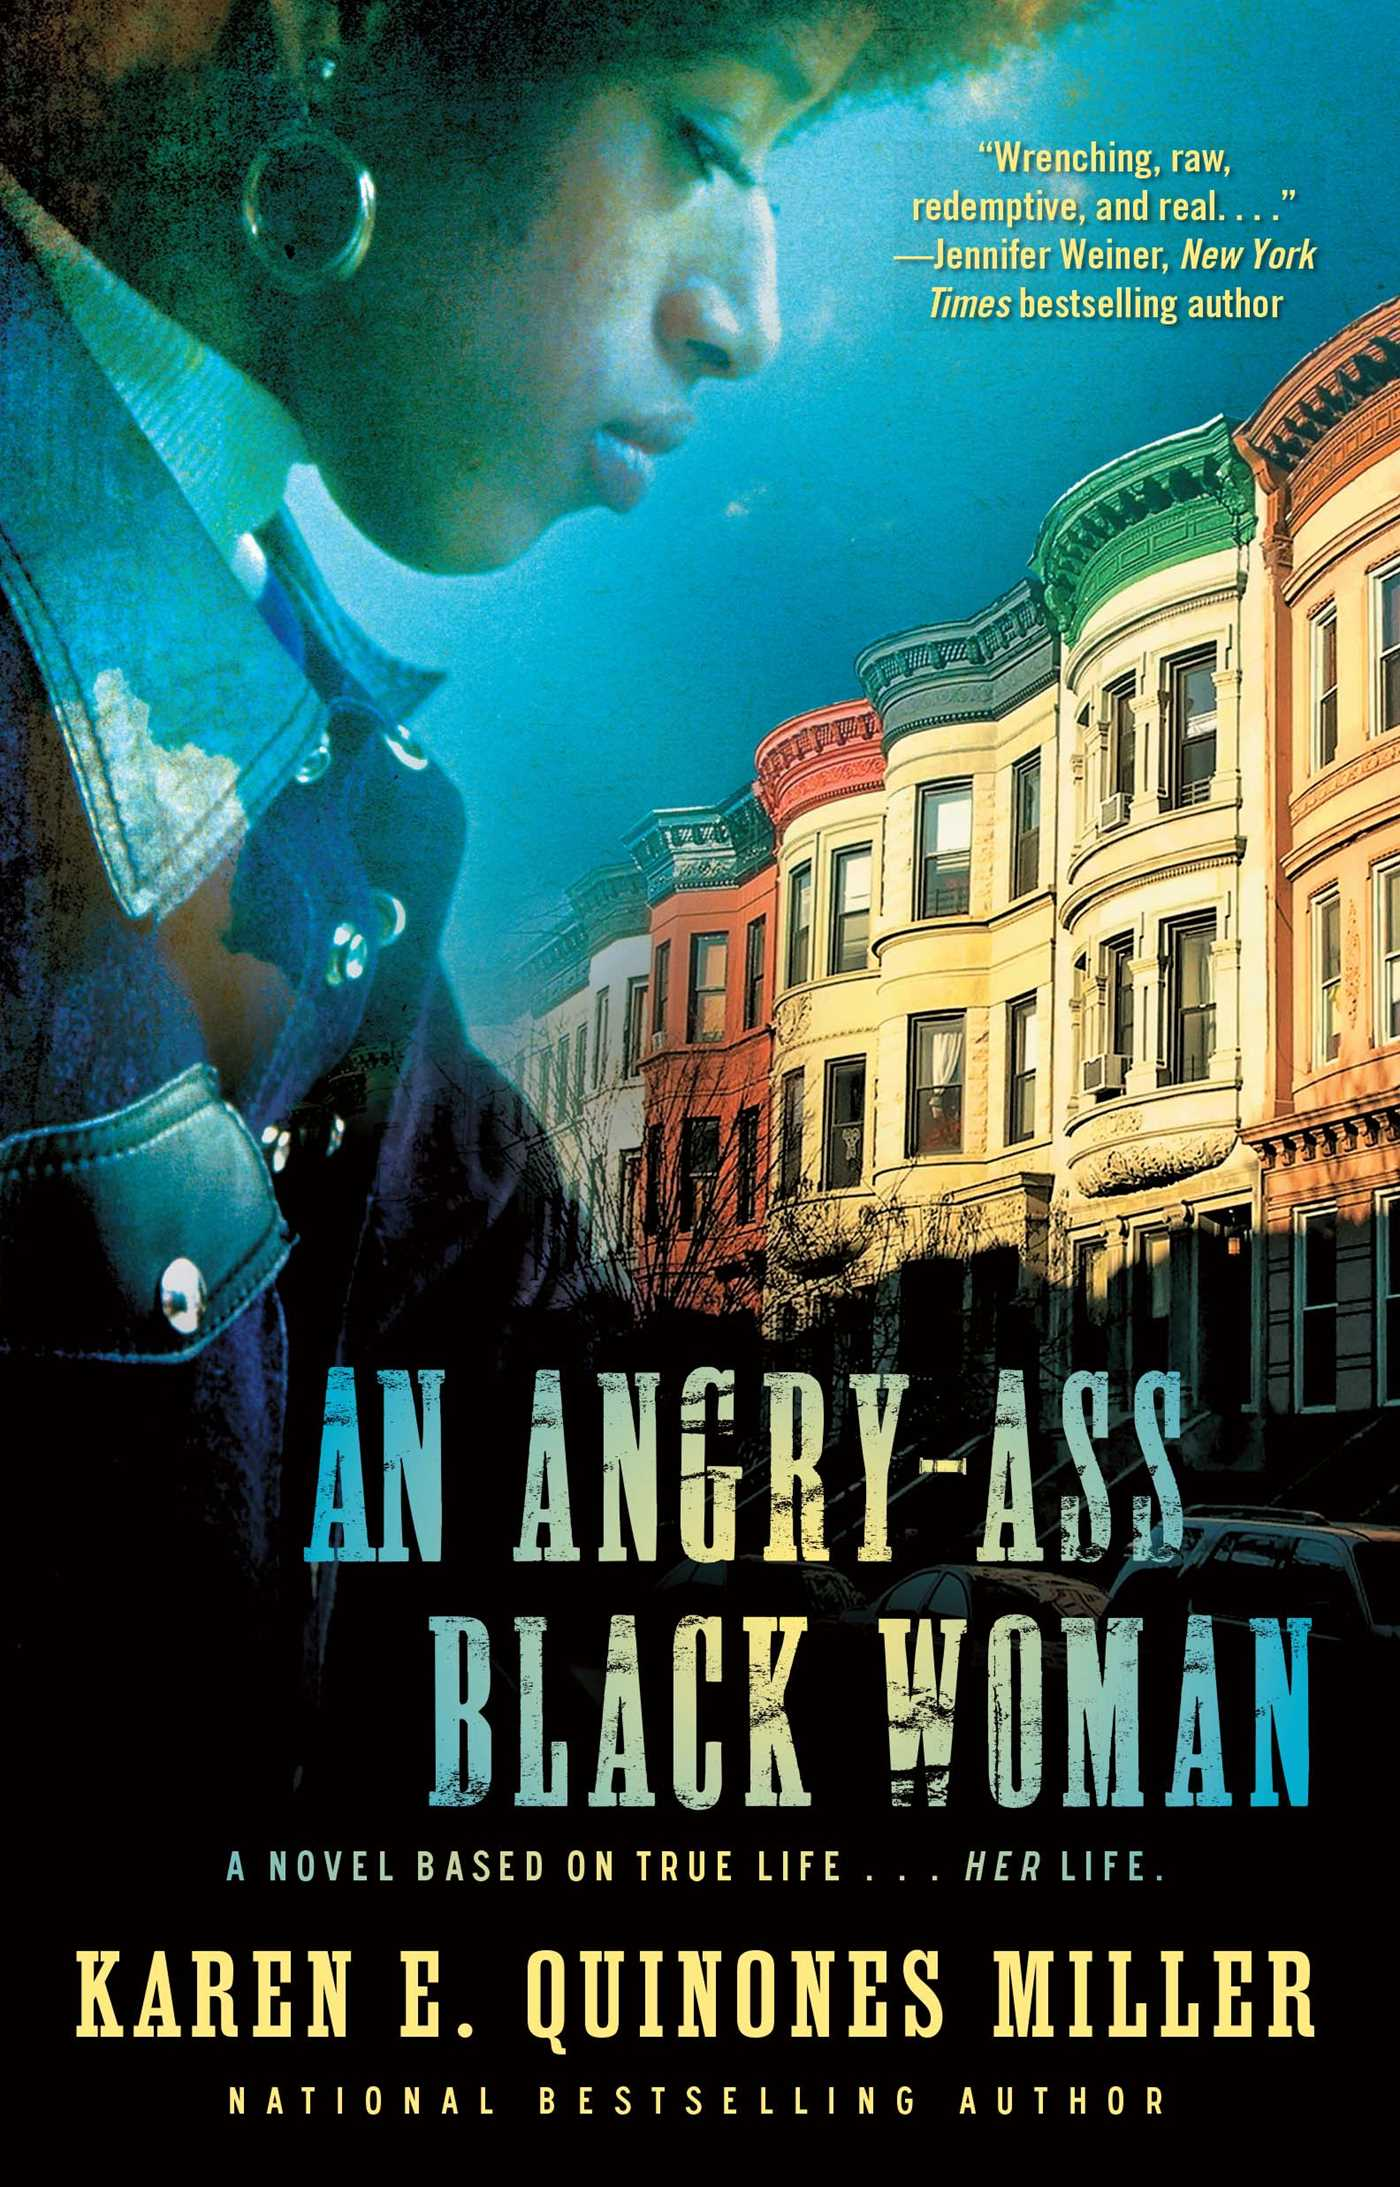 An angry ass black woman 9781451607826 hr